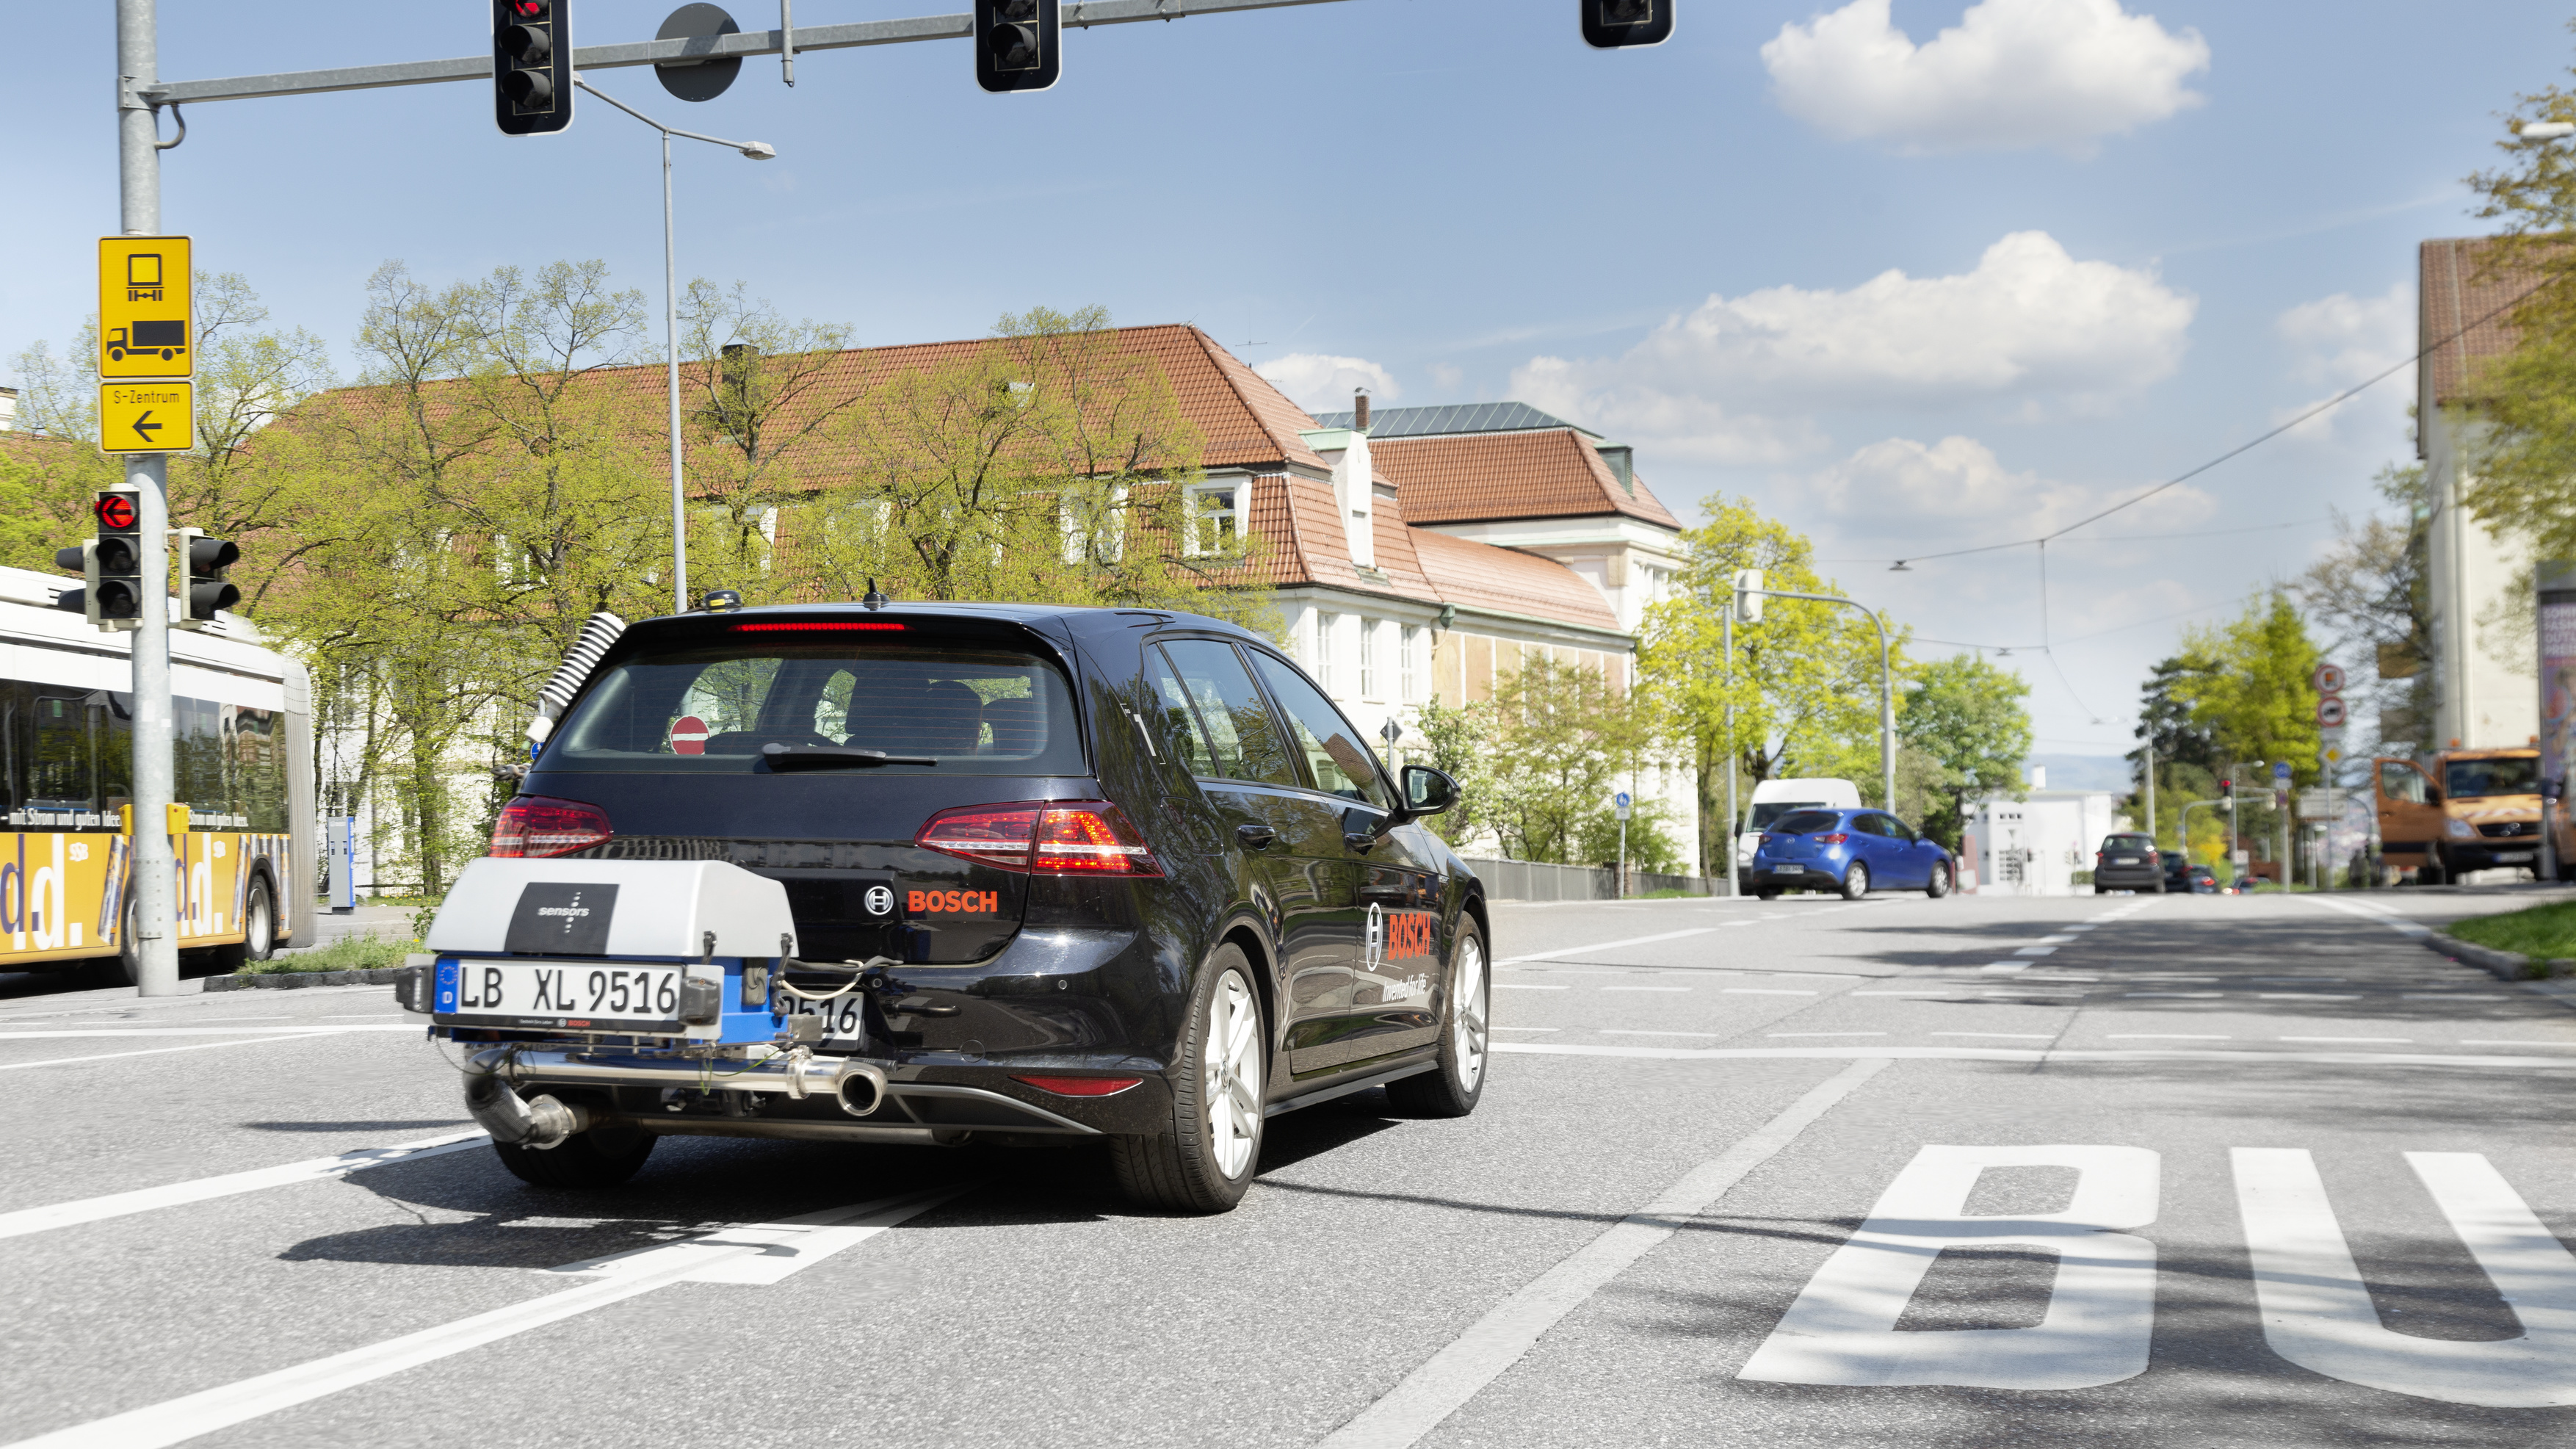 Breakthrough: new Bosch diesel technology provides solution to NOx